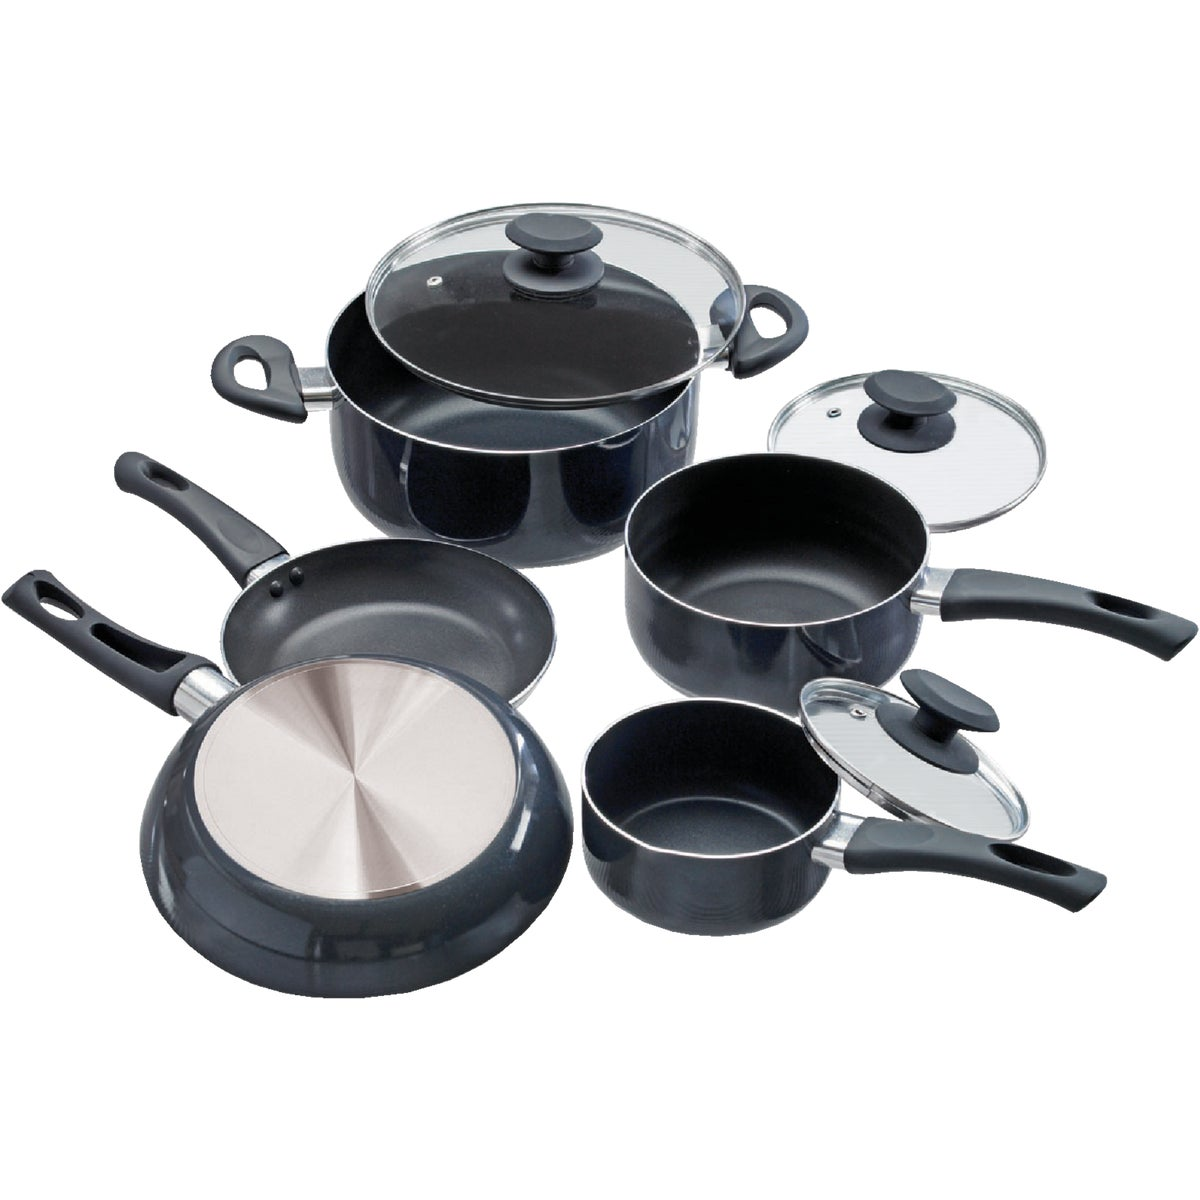 8PC COOKWARE SET